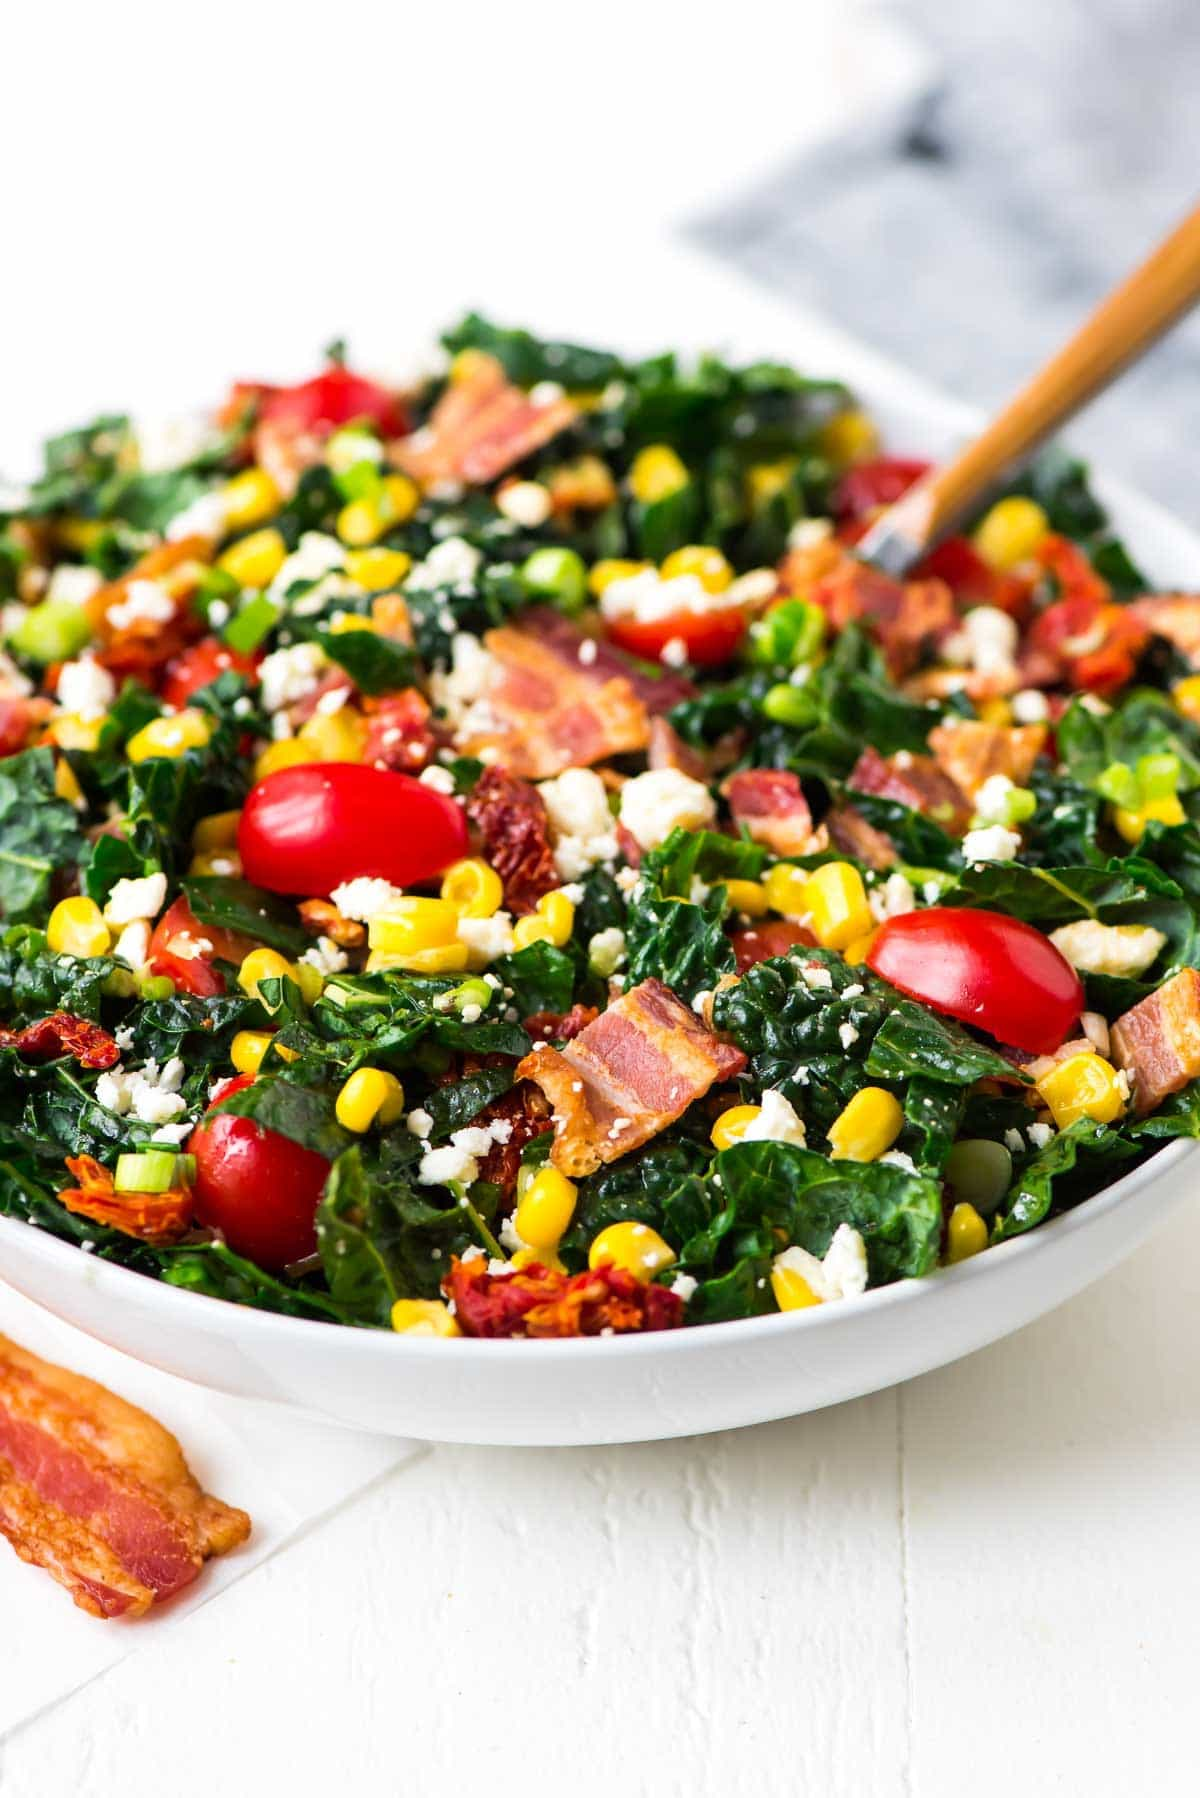 BLT Chopped Salad with feta and sweet corn. The perfect salad for summer! Can be prepped in advance and tastes great at room temperature, so it's great for meal planning, and as a picnic, potluck, or barbecue side dish. Recipe at wellplated.com | @wellplated